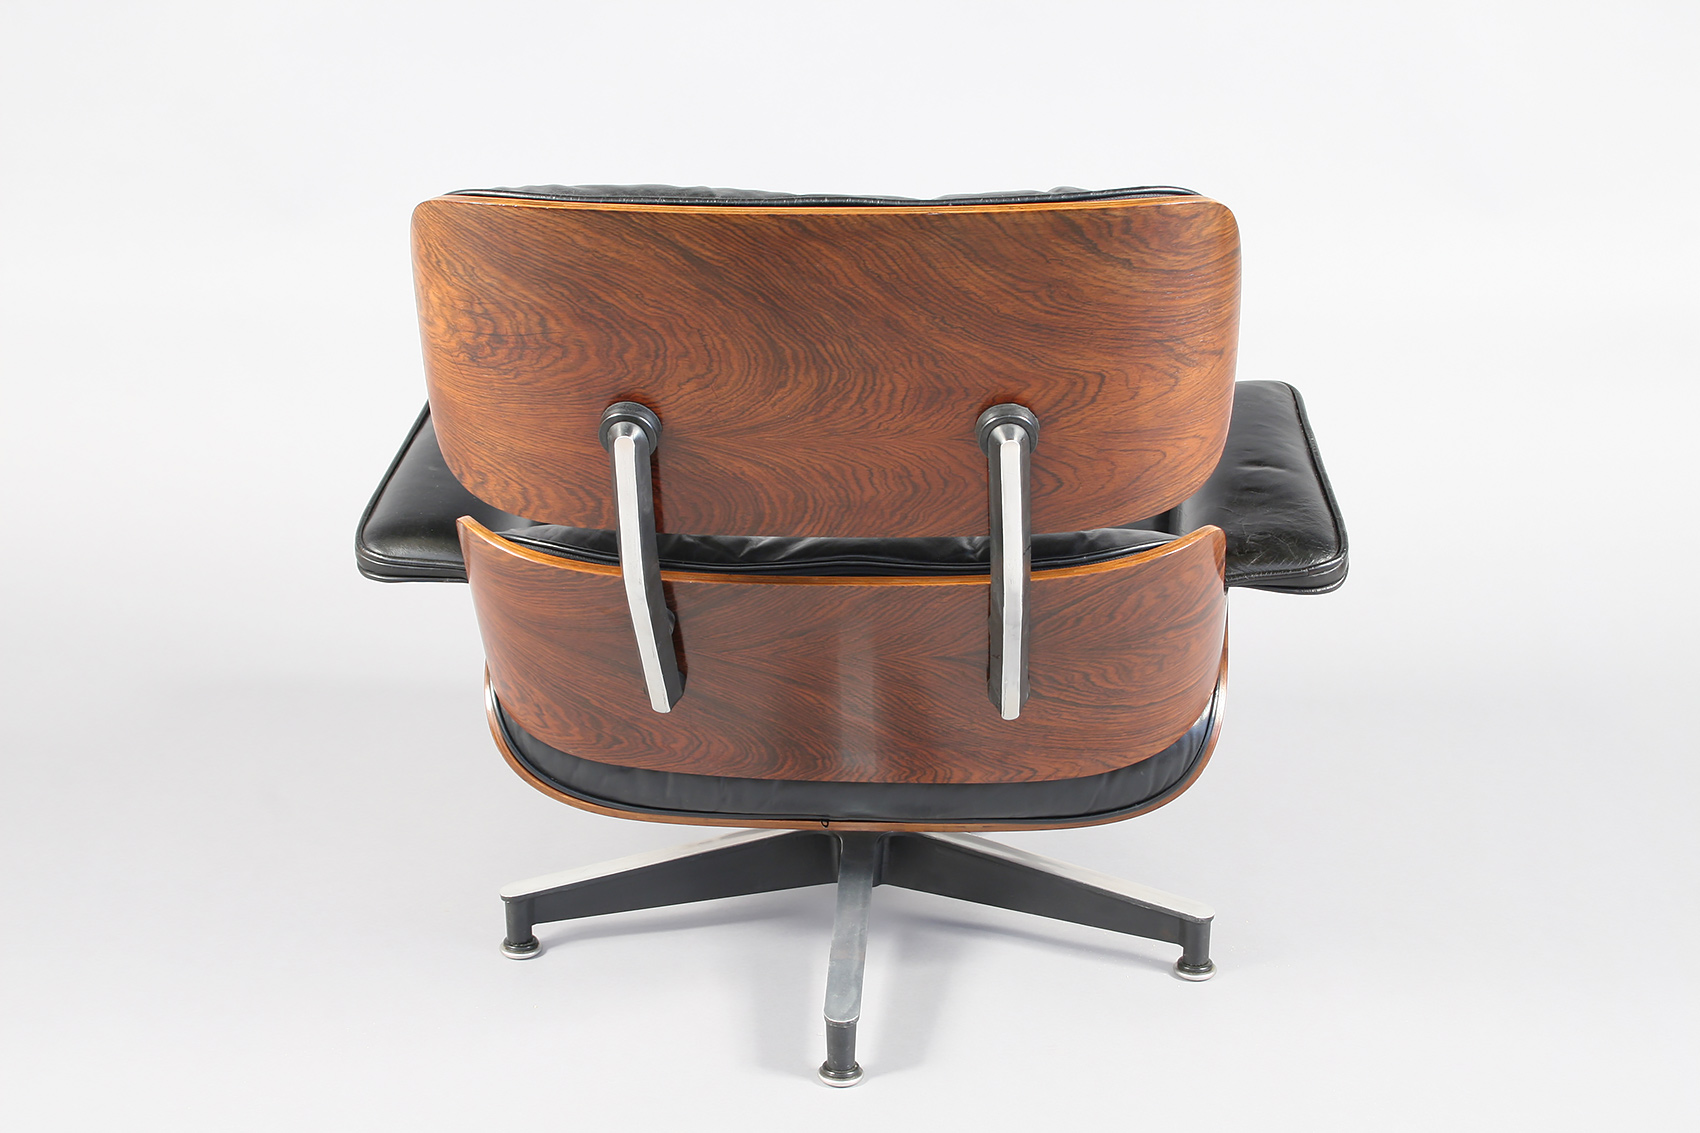 Eames Chair Repair Eames Lounge Chair Set 670 671 Restoration Conservation